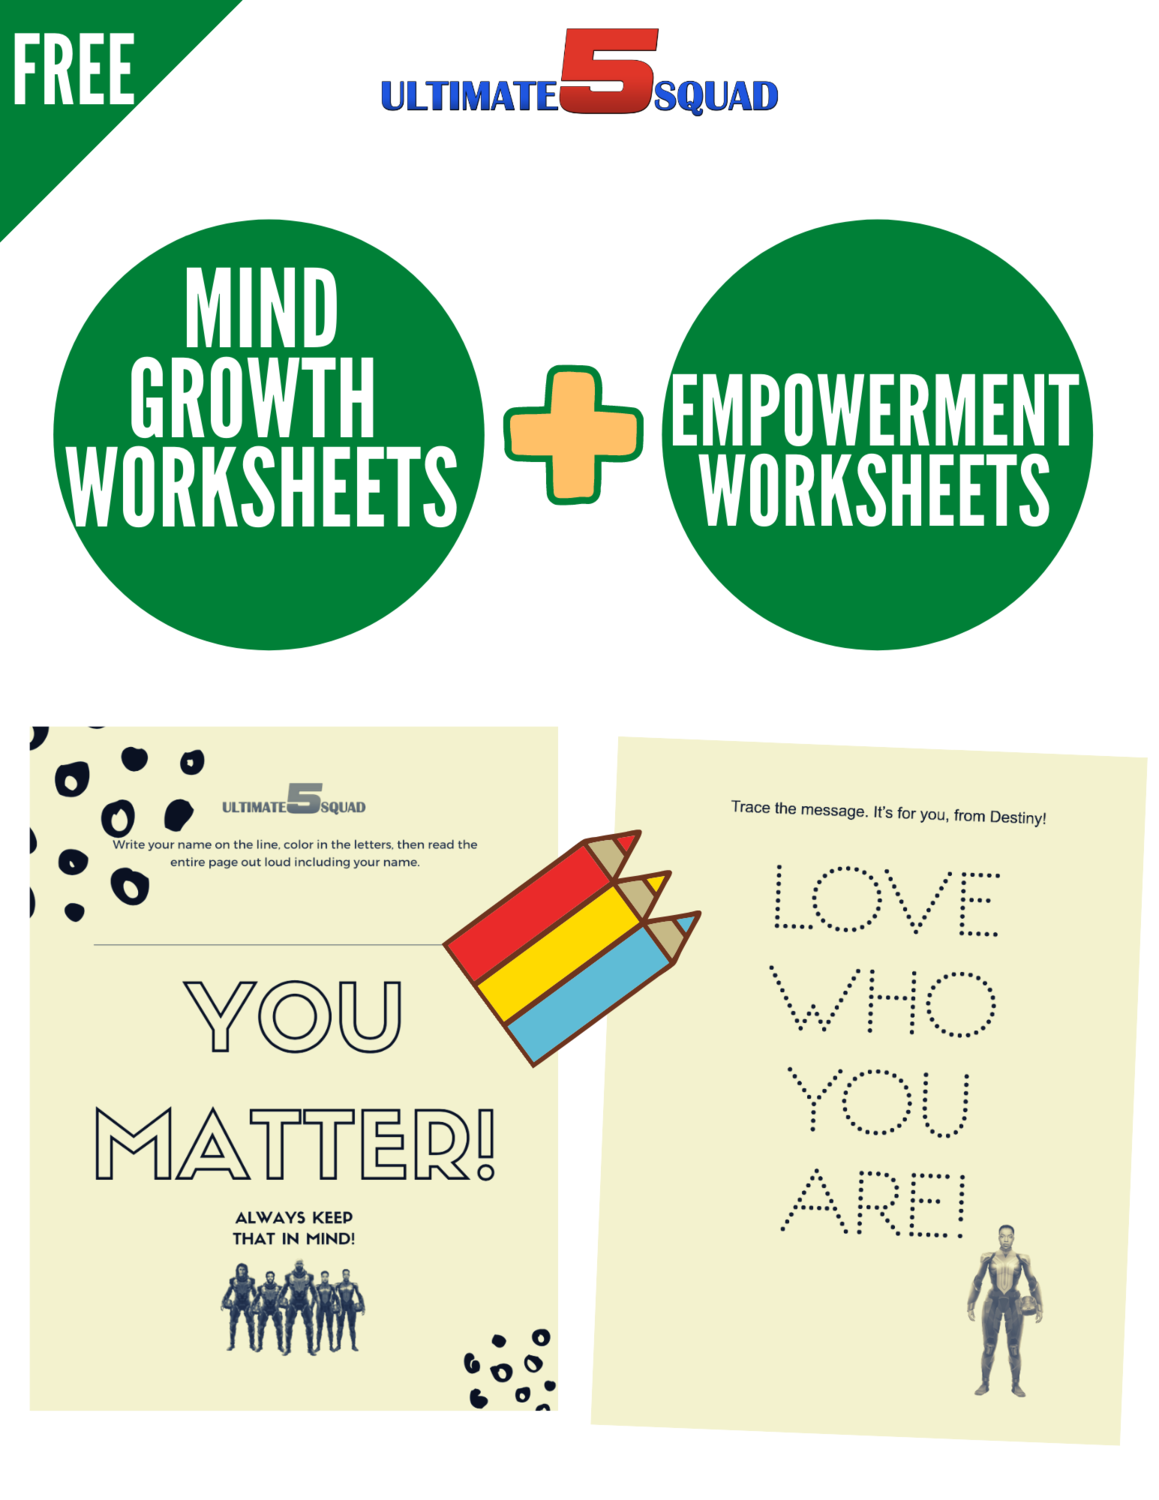 FREE Mind Growth and Empowerment Printable Worksheets